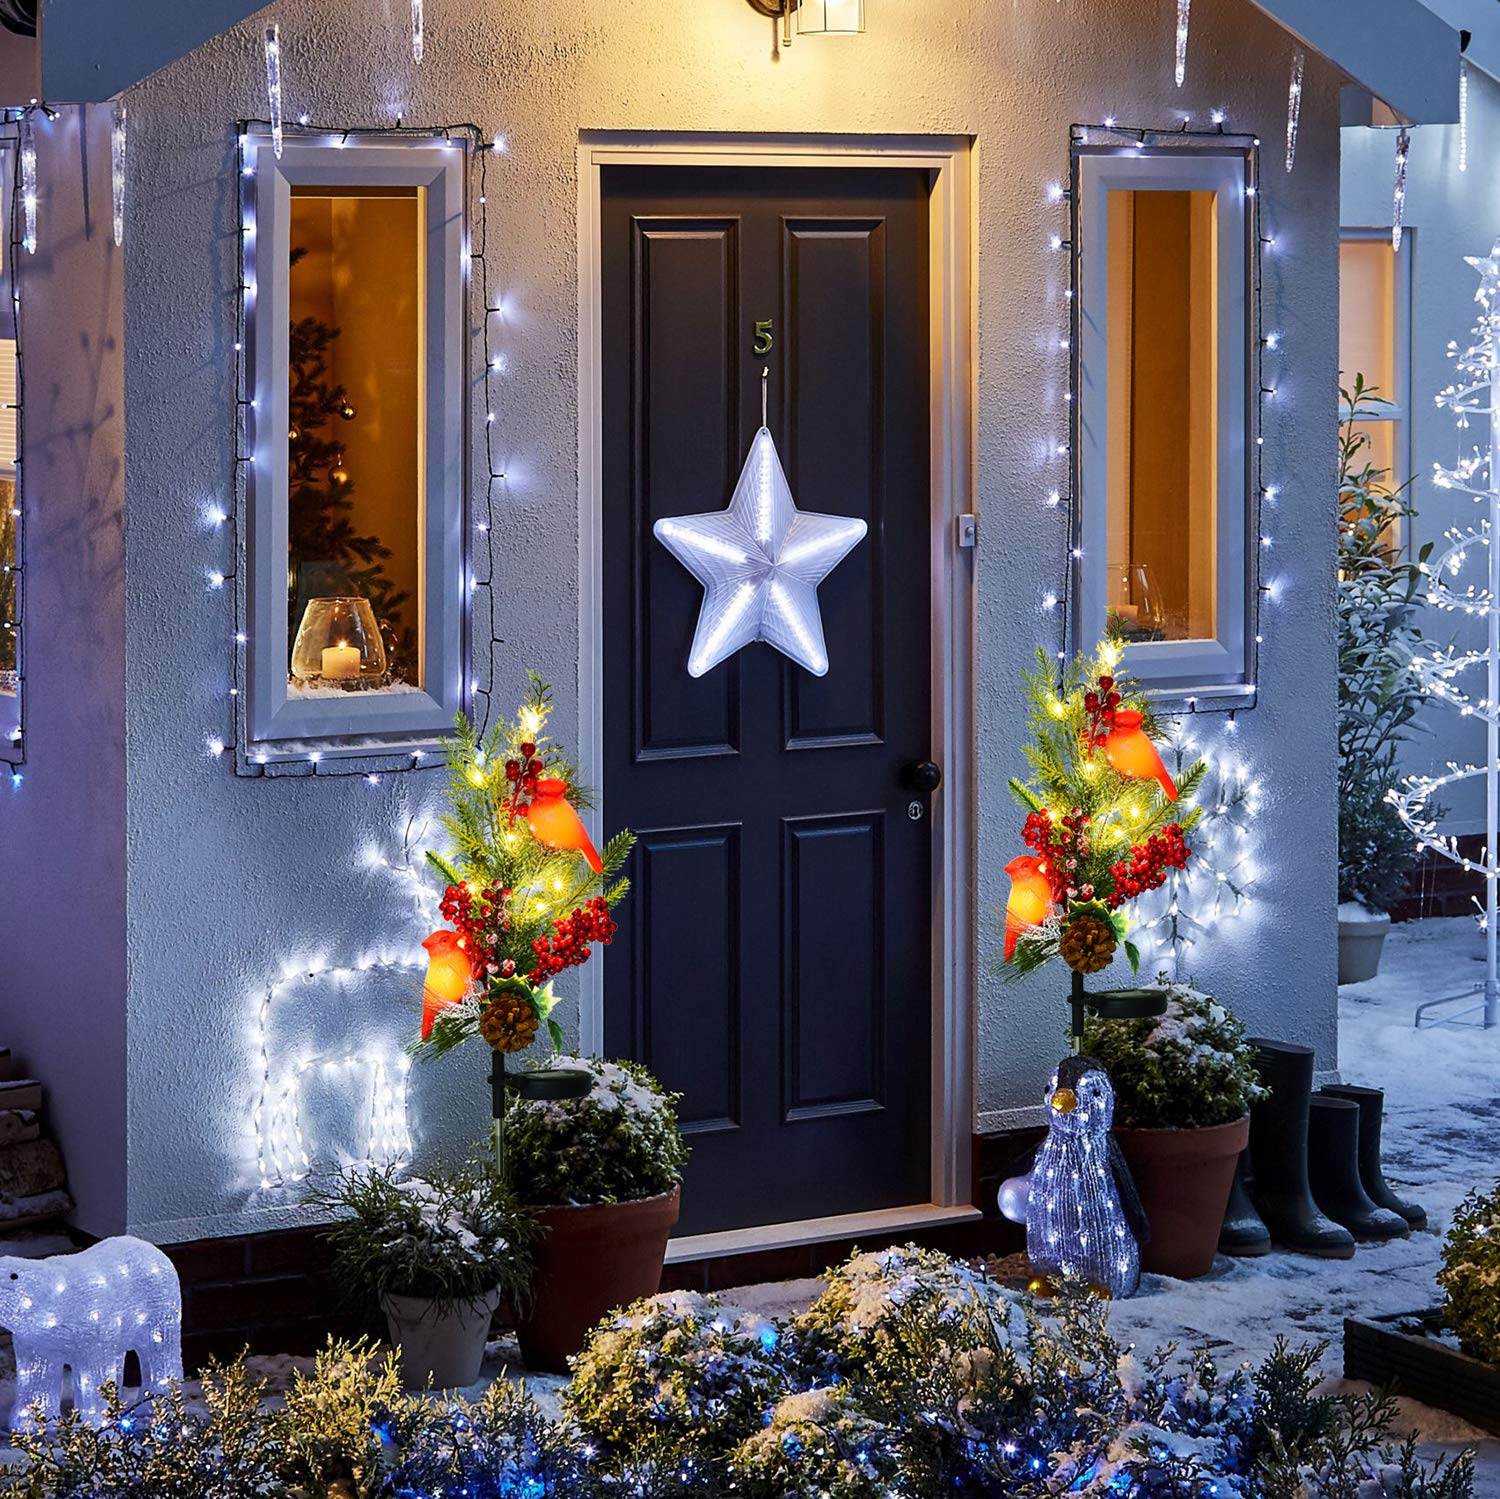 Doingart Outdoor Solar Christmas Light Decorations Snowman Christmas Light with Faux Pine Cones LED Candle Foliage Accents Garden Decorative Stake